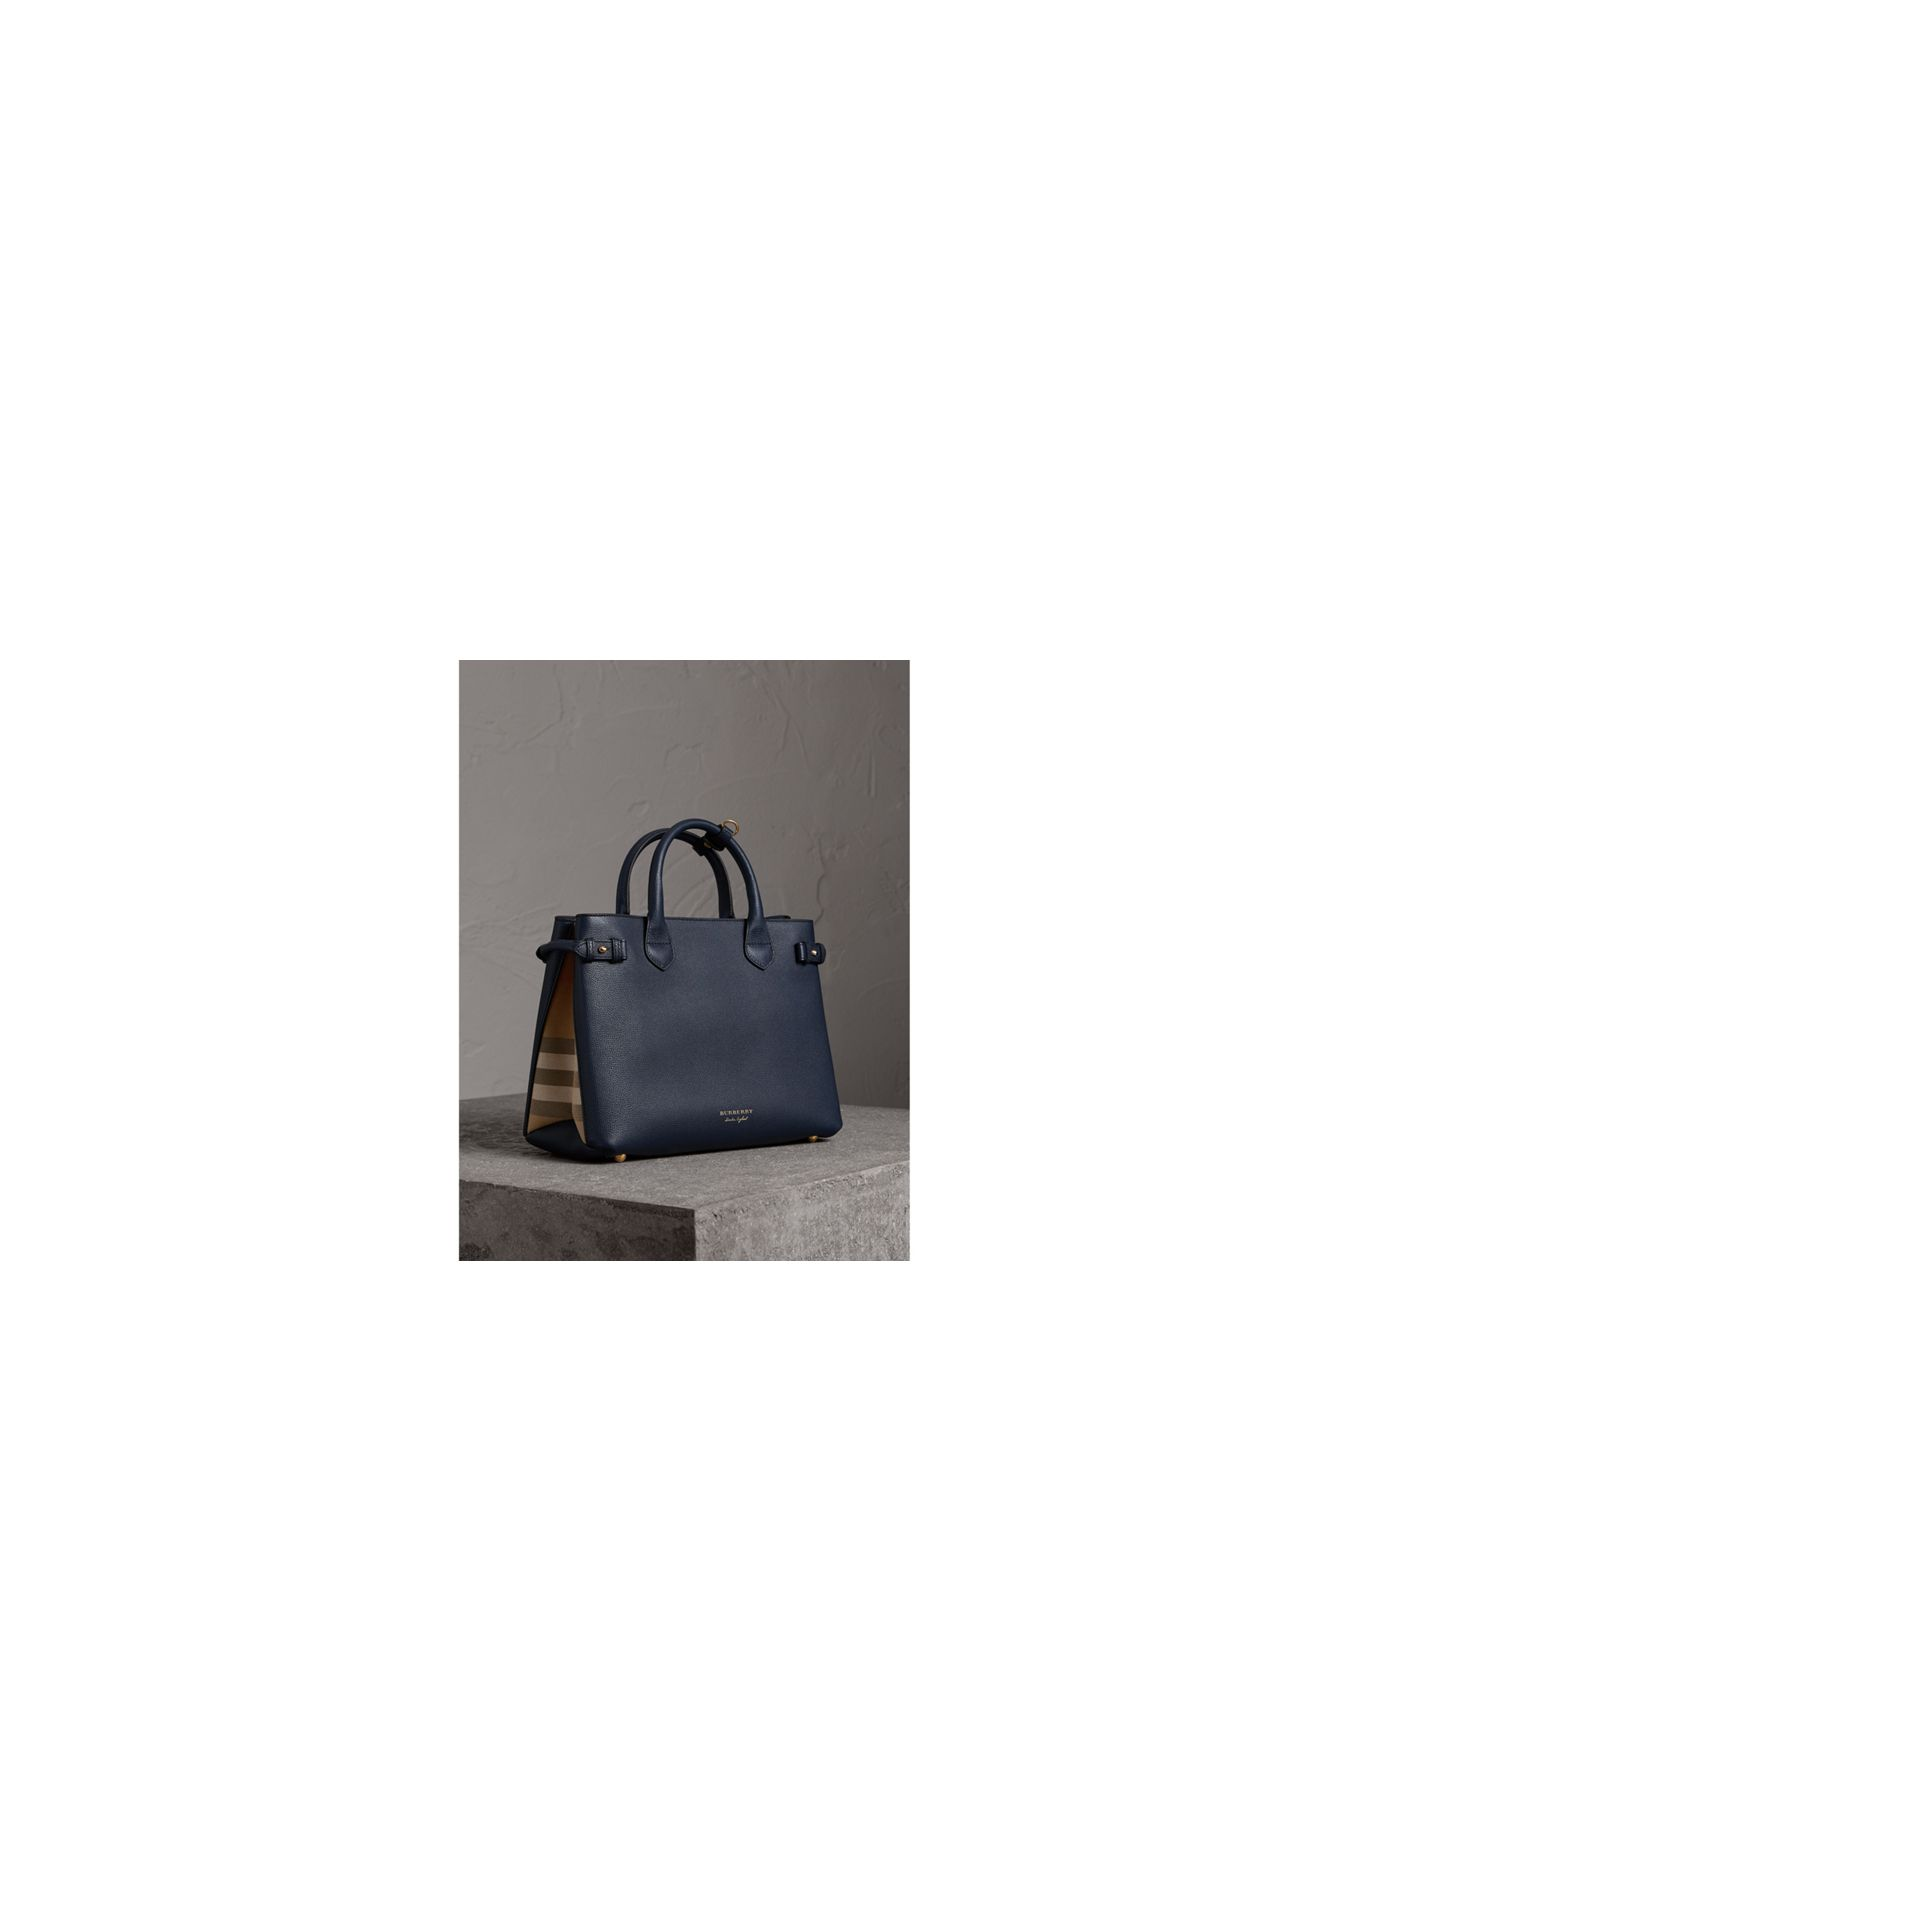 Sac The Banner medium en cuir et coton House check (Bleu Encre) - Femme | Burberry Canada - photo de la galerie 7